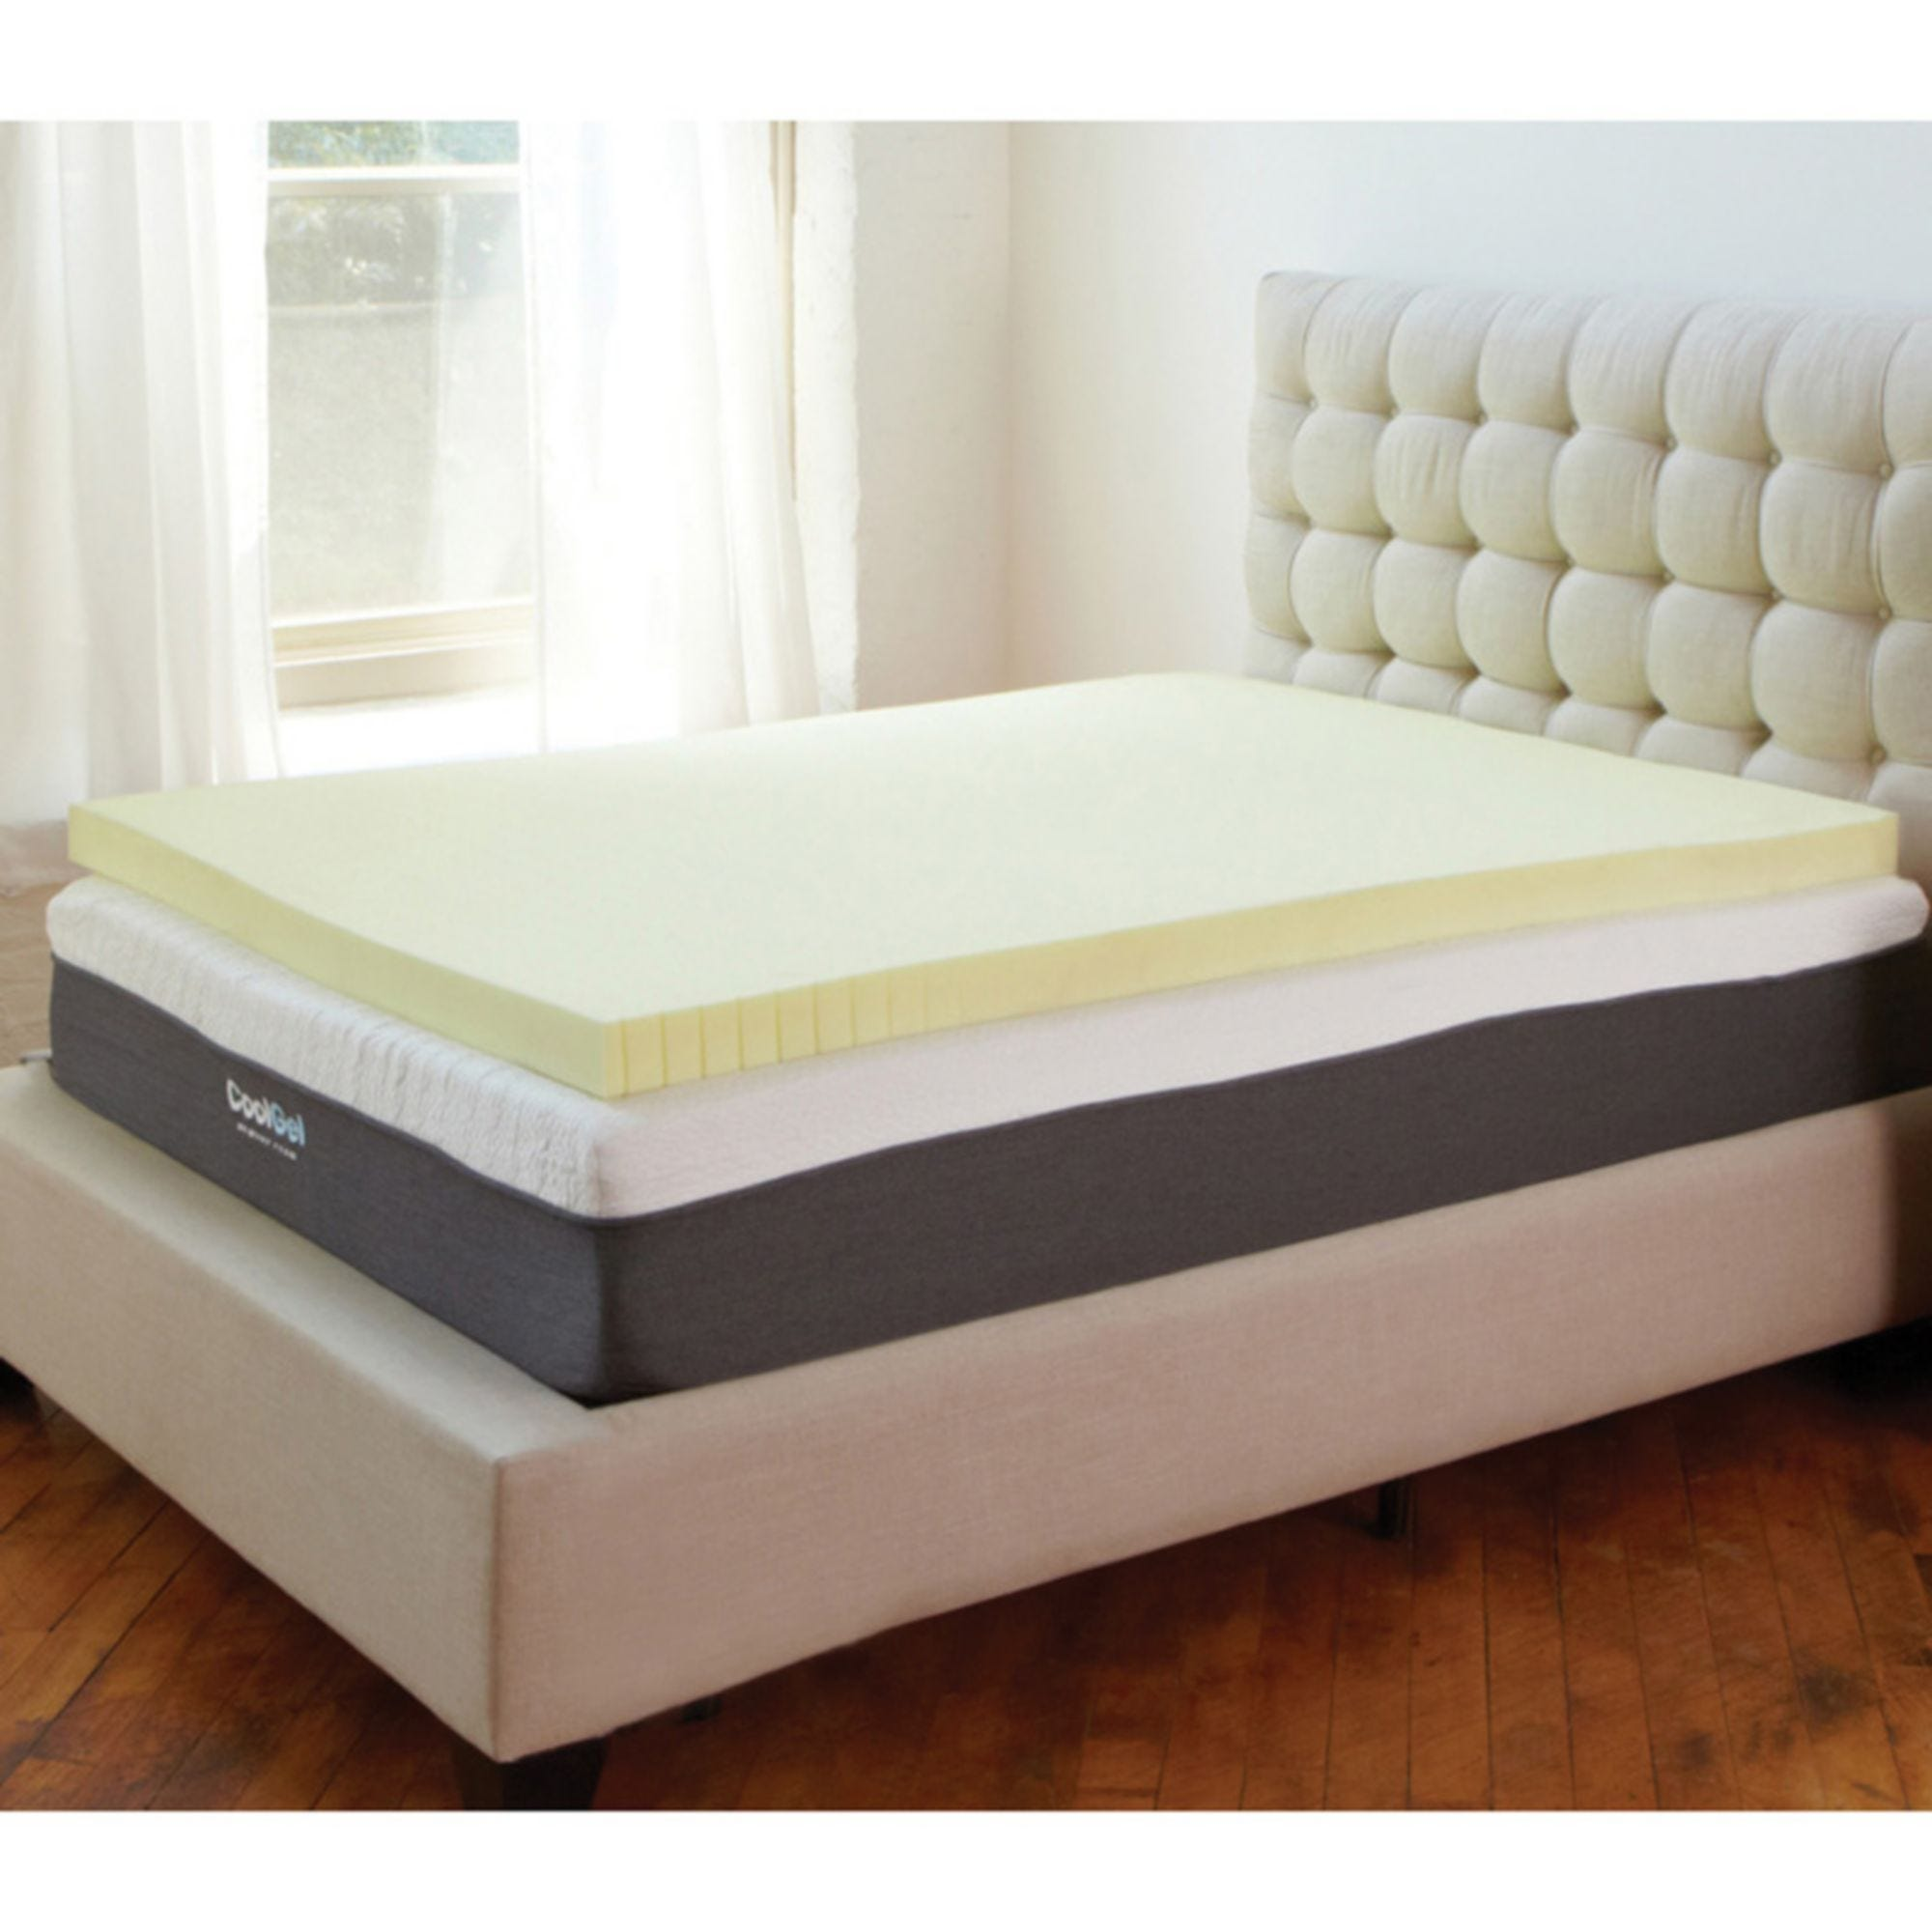 sleep prices bed price frame mattress size pedic number king tempurpedic dimensions sale tempur